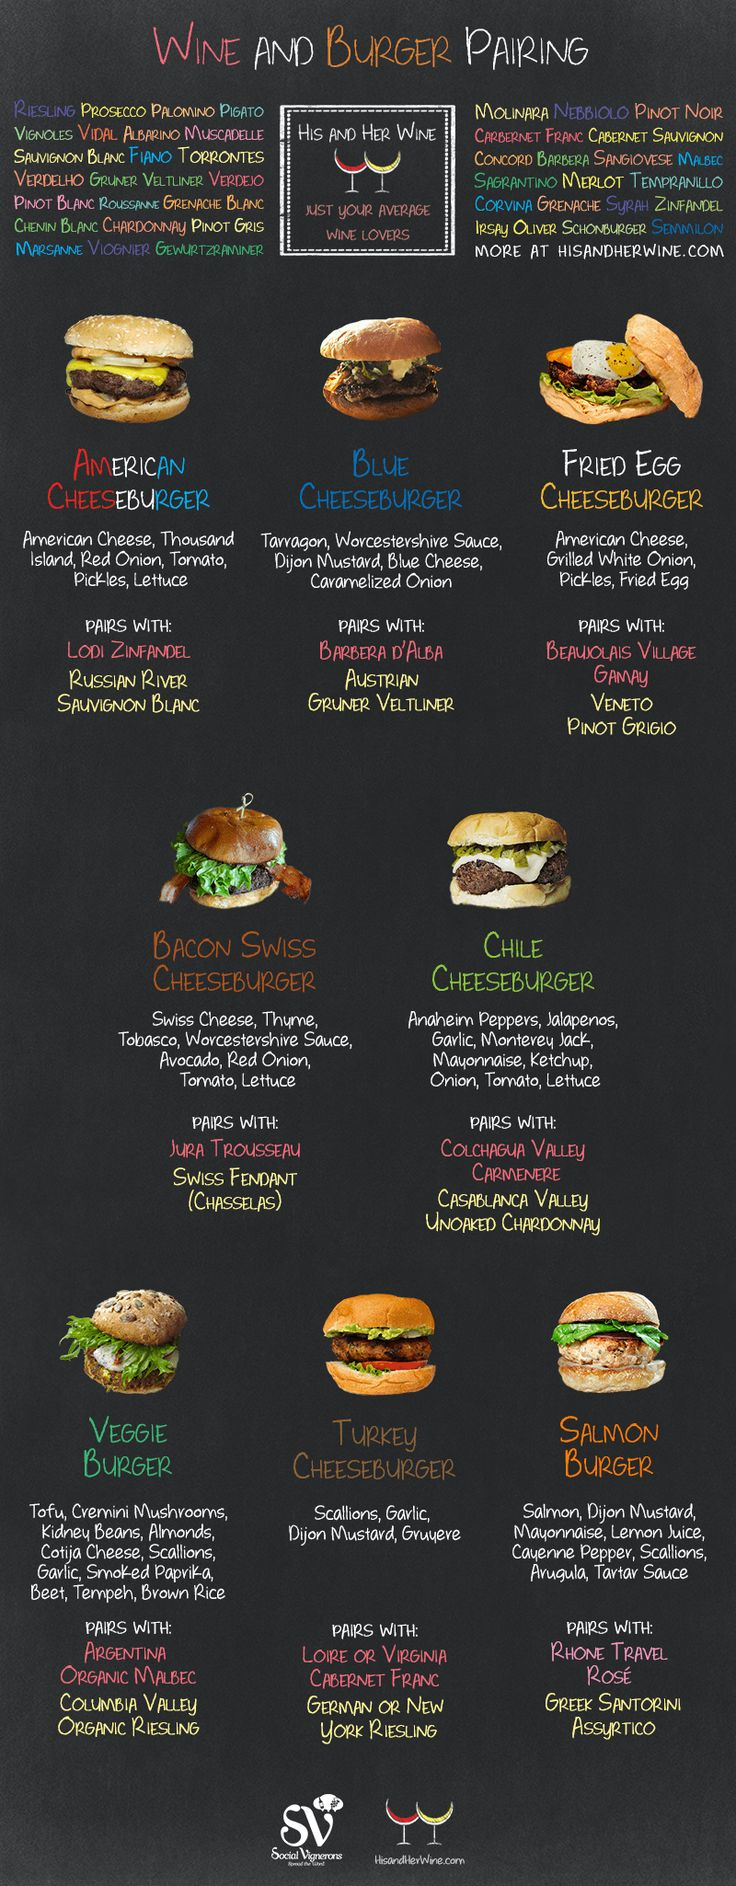 Top Wine & Burger Pairings! #foodpairing #wineandfood #burger